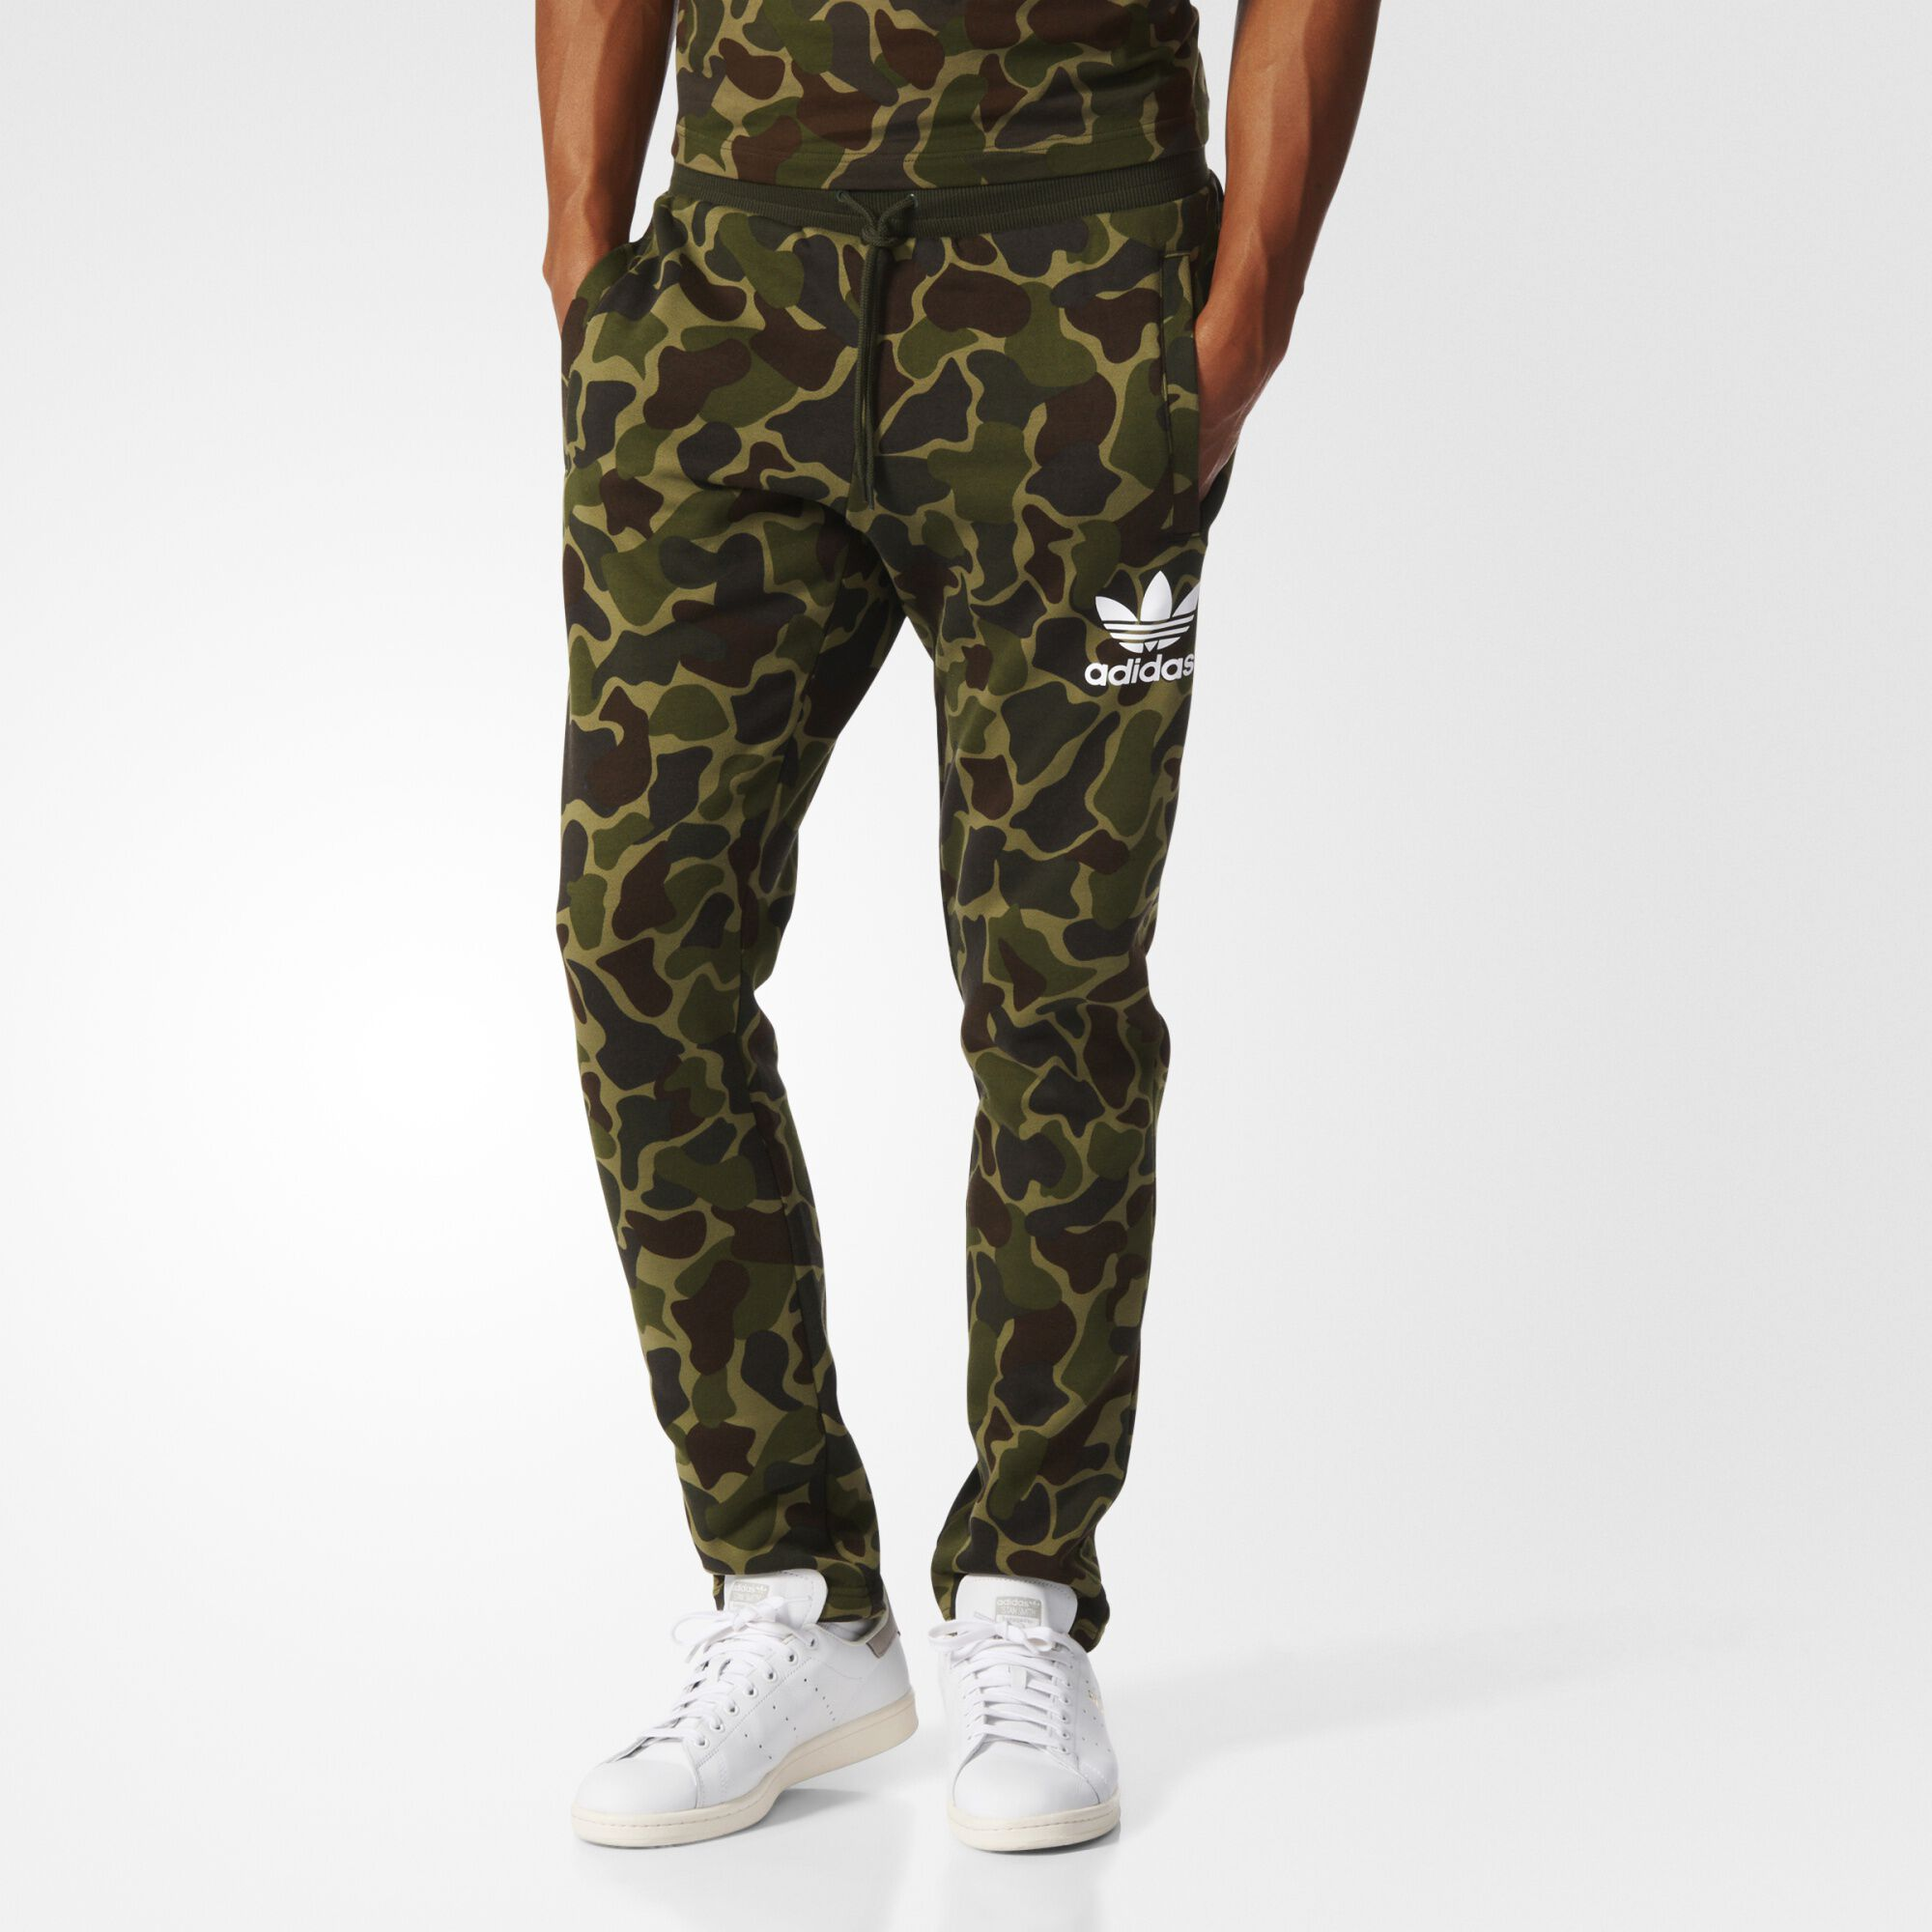 adidas skinny pants mens